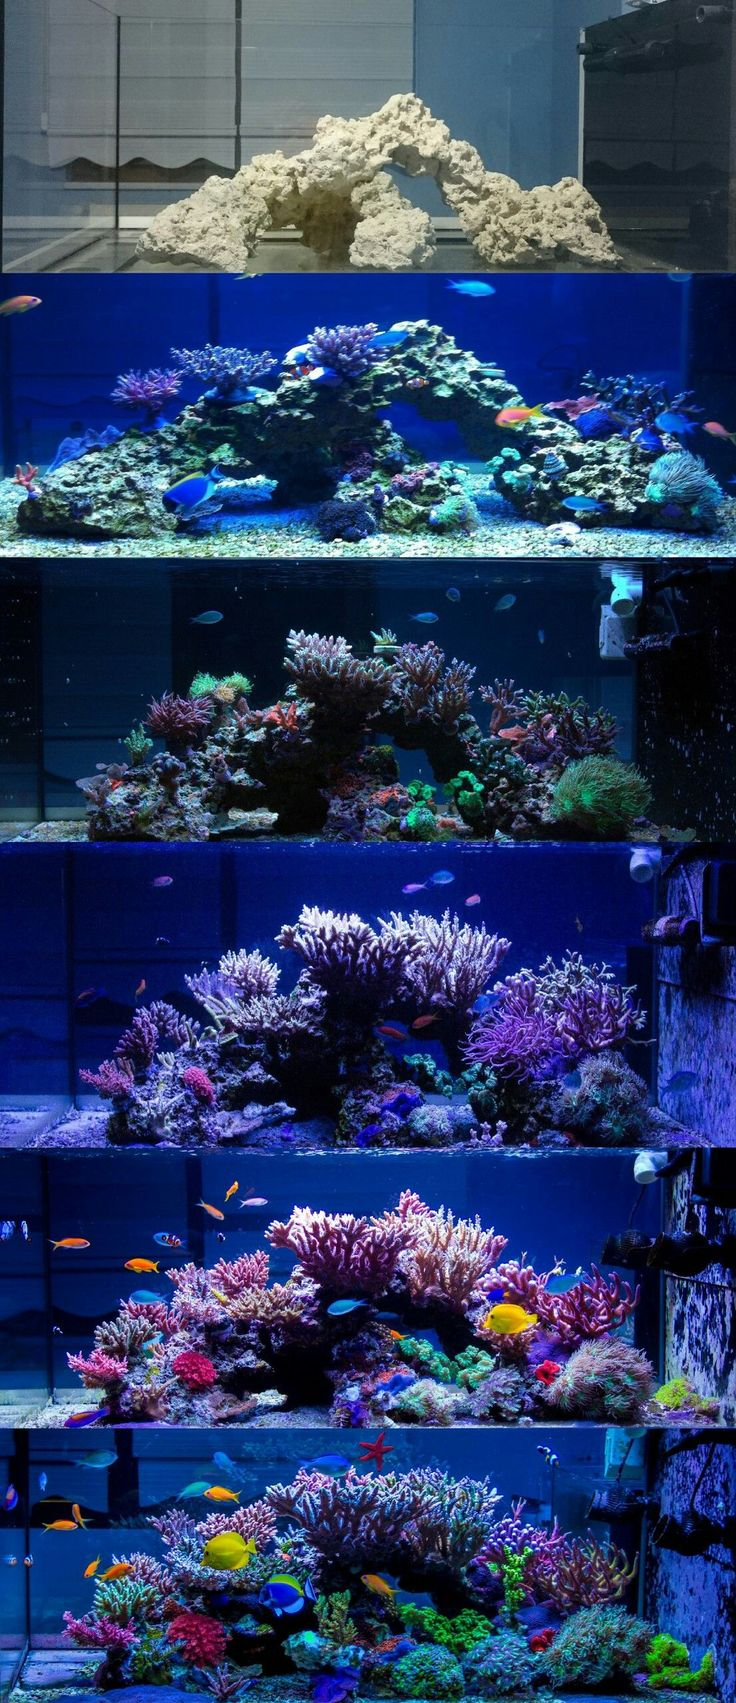 985 best aquarium images on pinterest aquariums fish tanks and aquarium ideas. Black Bedroom Furniture Sets. Home Design Ideas